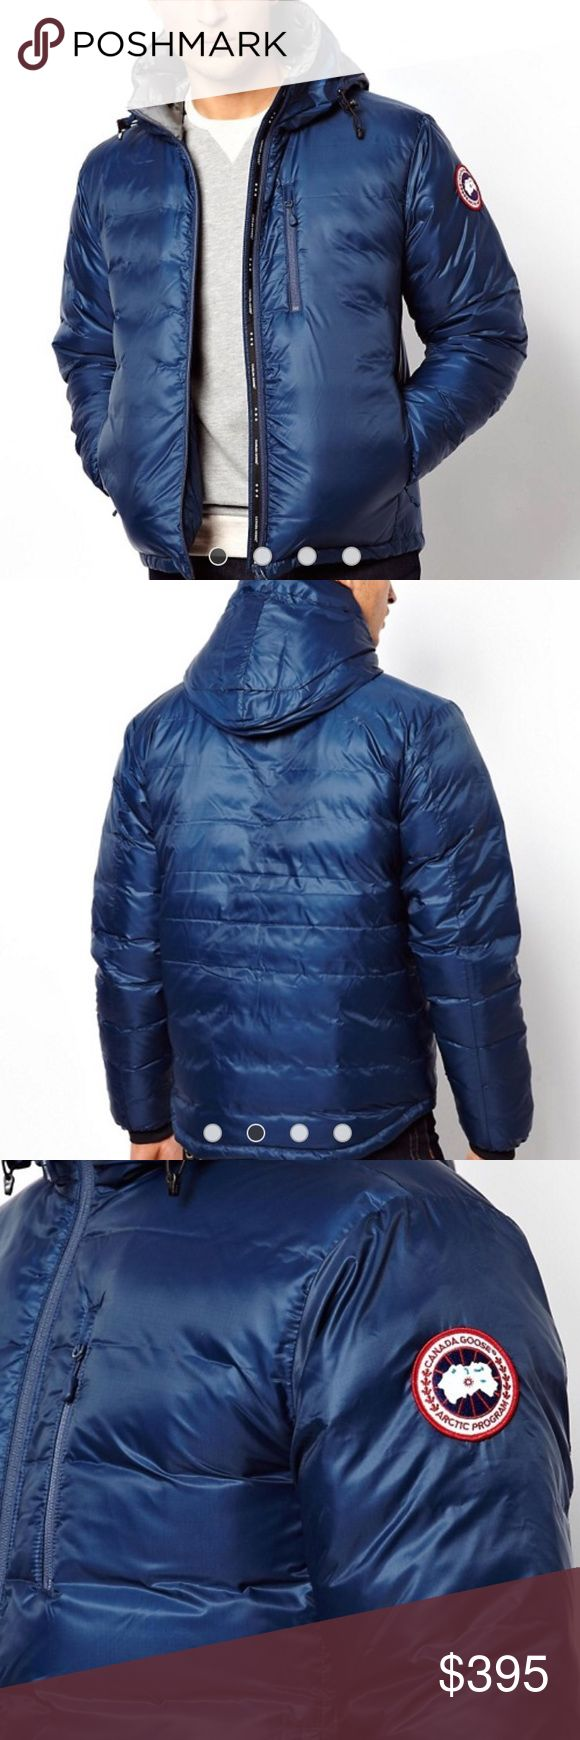 """Authentic Blue Canada Goose Men's Jacket Get Canada Goose on a bargain. Men's size medium  jacket.  Excellent condition. I believe it was a """"3"""" on their warmth scale. Canada Goose Jackets & Coats Puffers"""